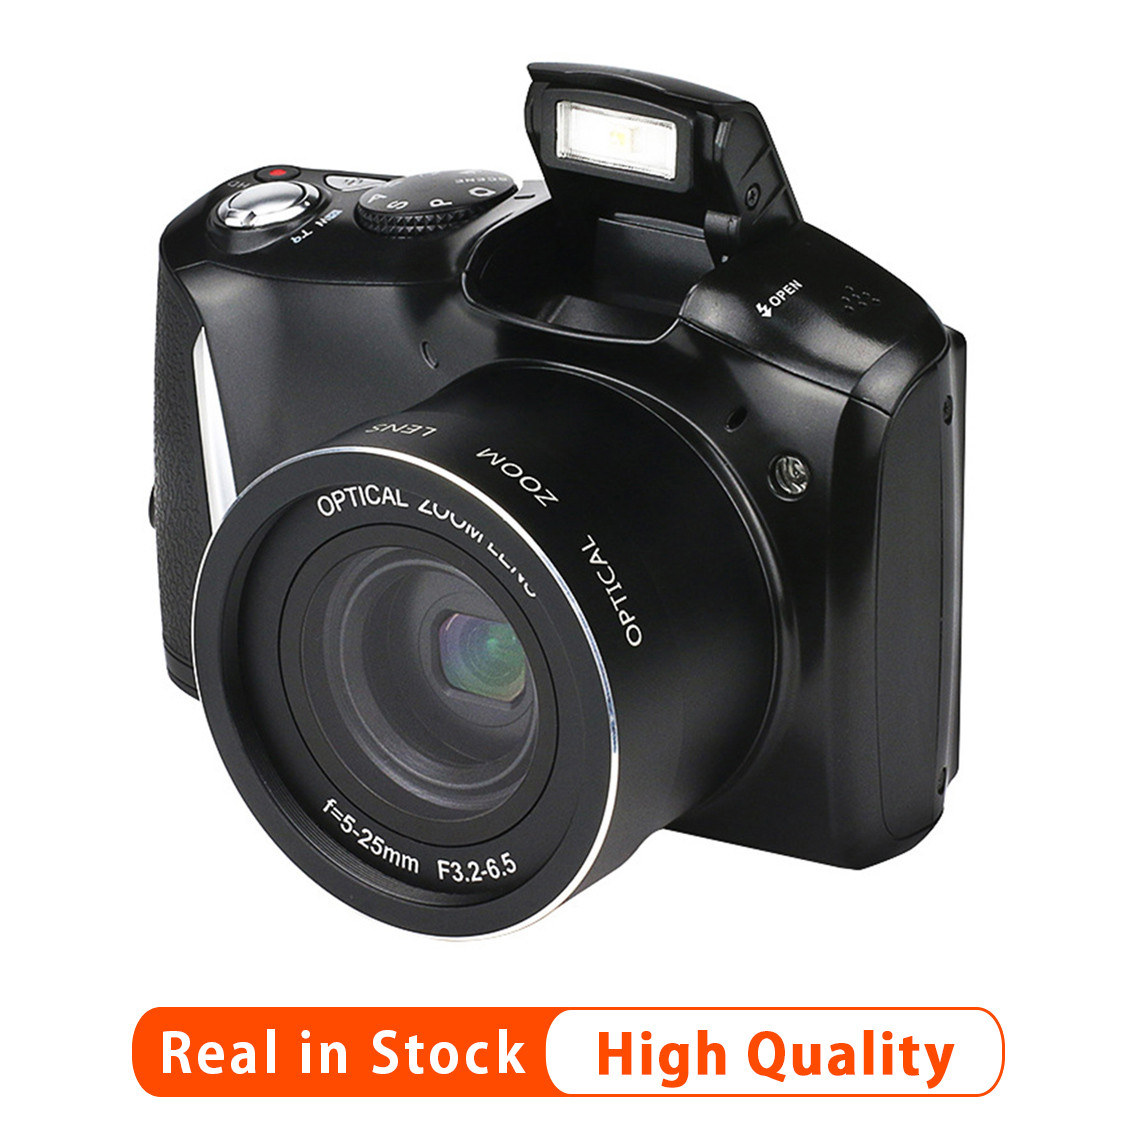 New 24 Megapixel HD Telephoto SLR Digital Camera 14MP CMOS 20 Times Digital Zoom SLR Camera WIth 3.5